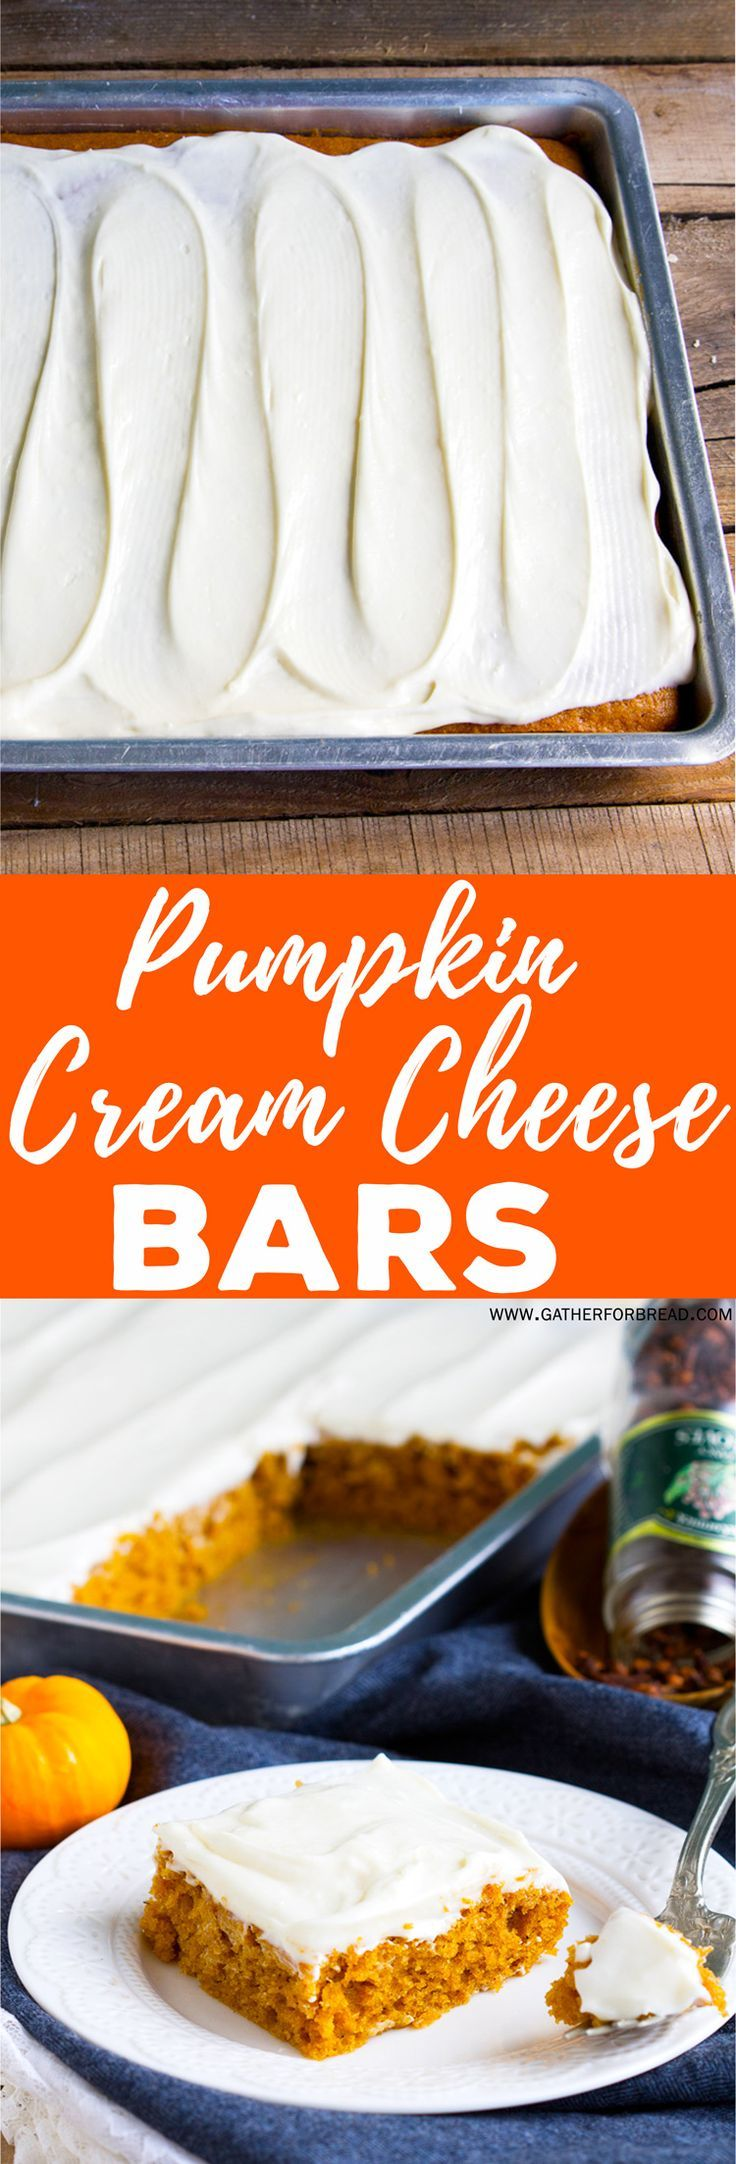 Pumpkin Cream Cheese Bars - Recipe for homemade pumpkin bars with a rich creamy frosting. This fall dessert is an easy family FAVORITE!